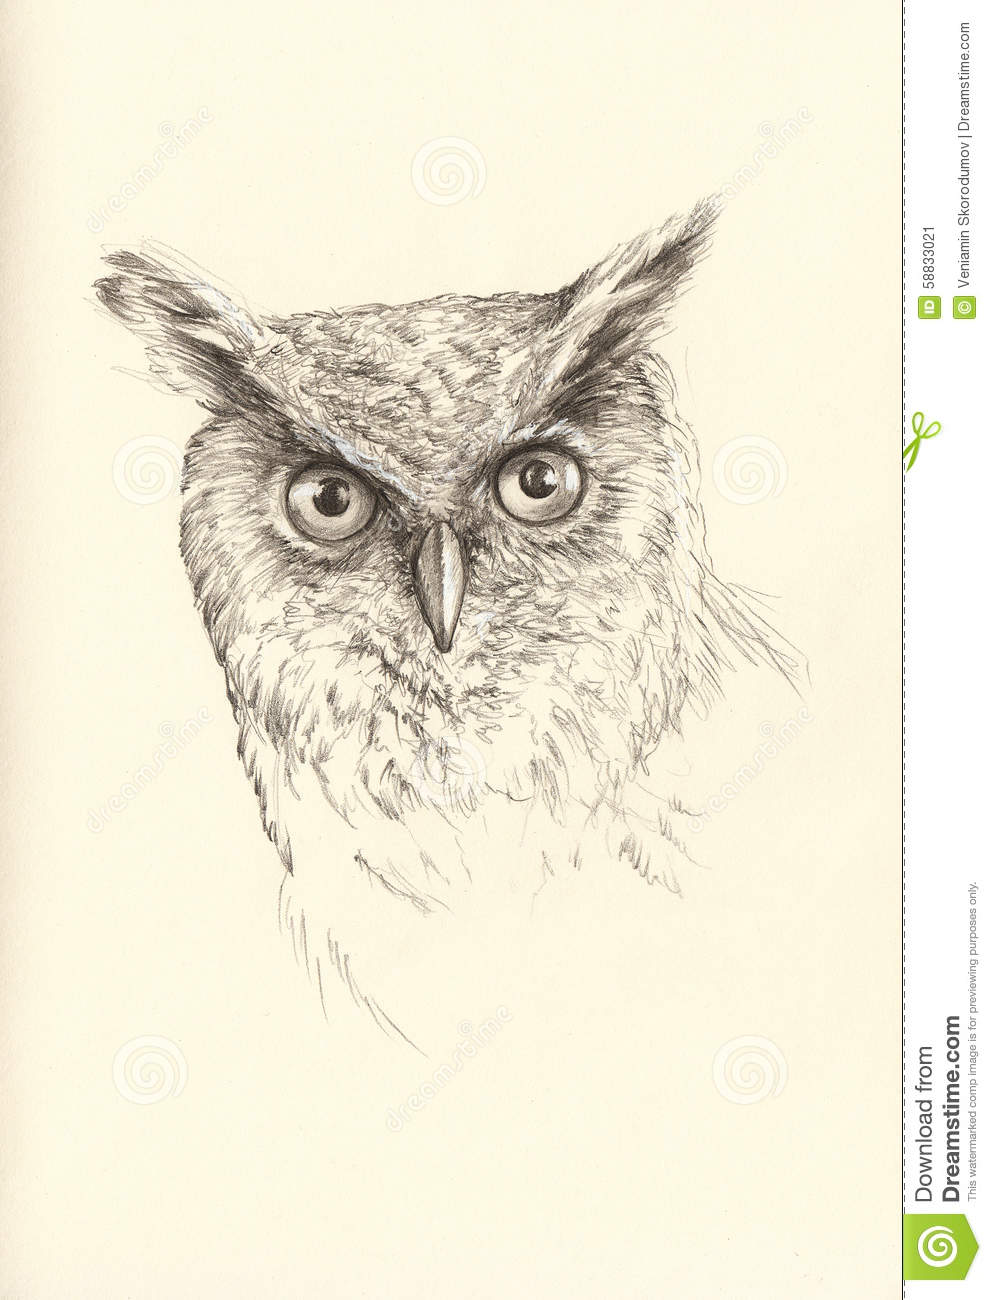 Realistic Owl Drawing Sketch